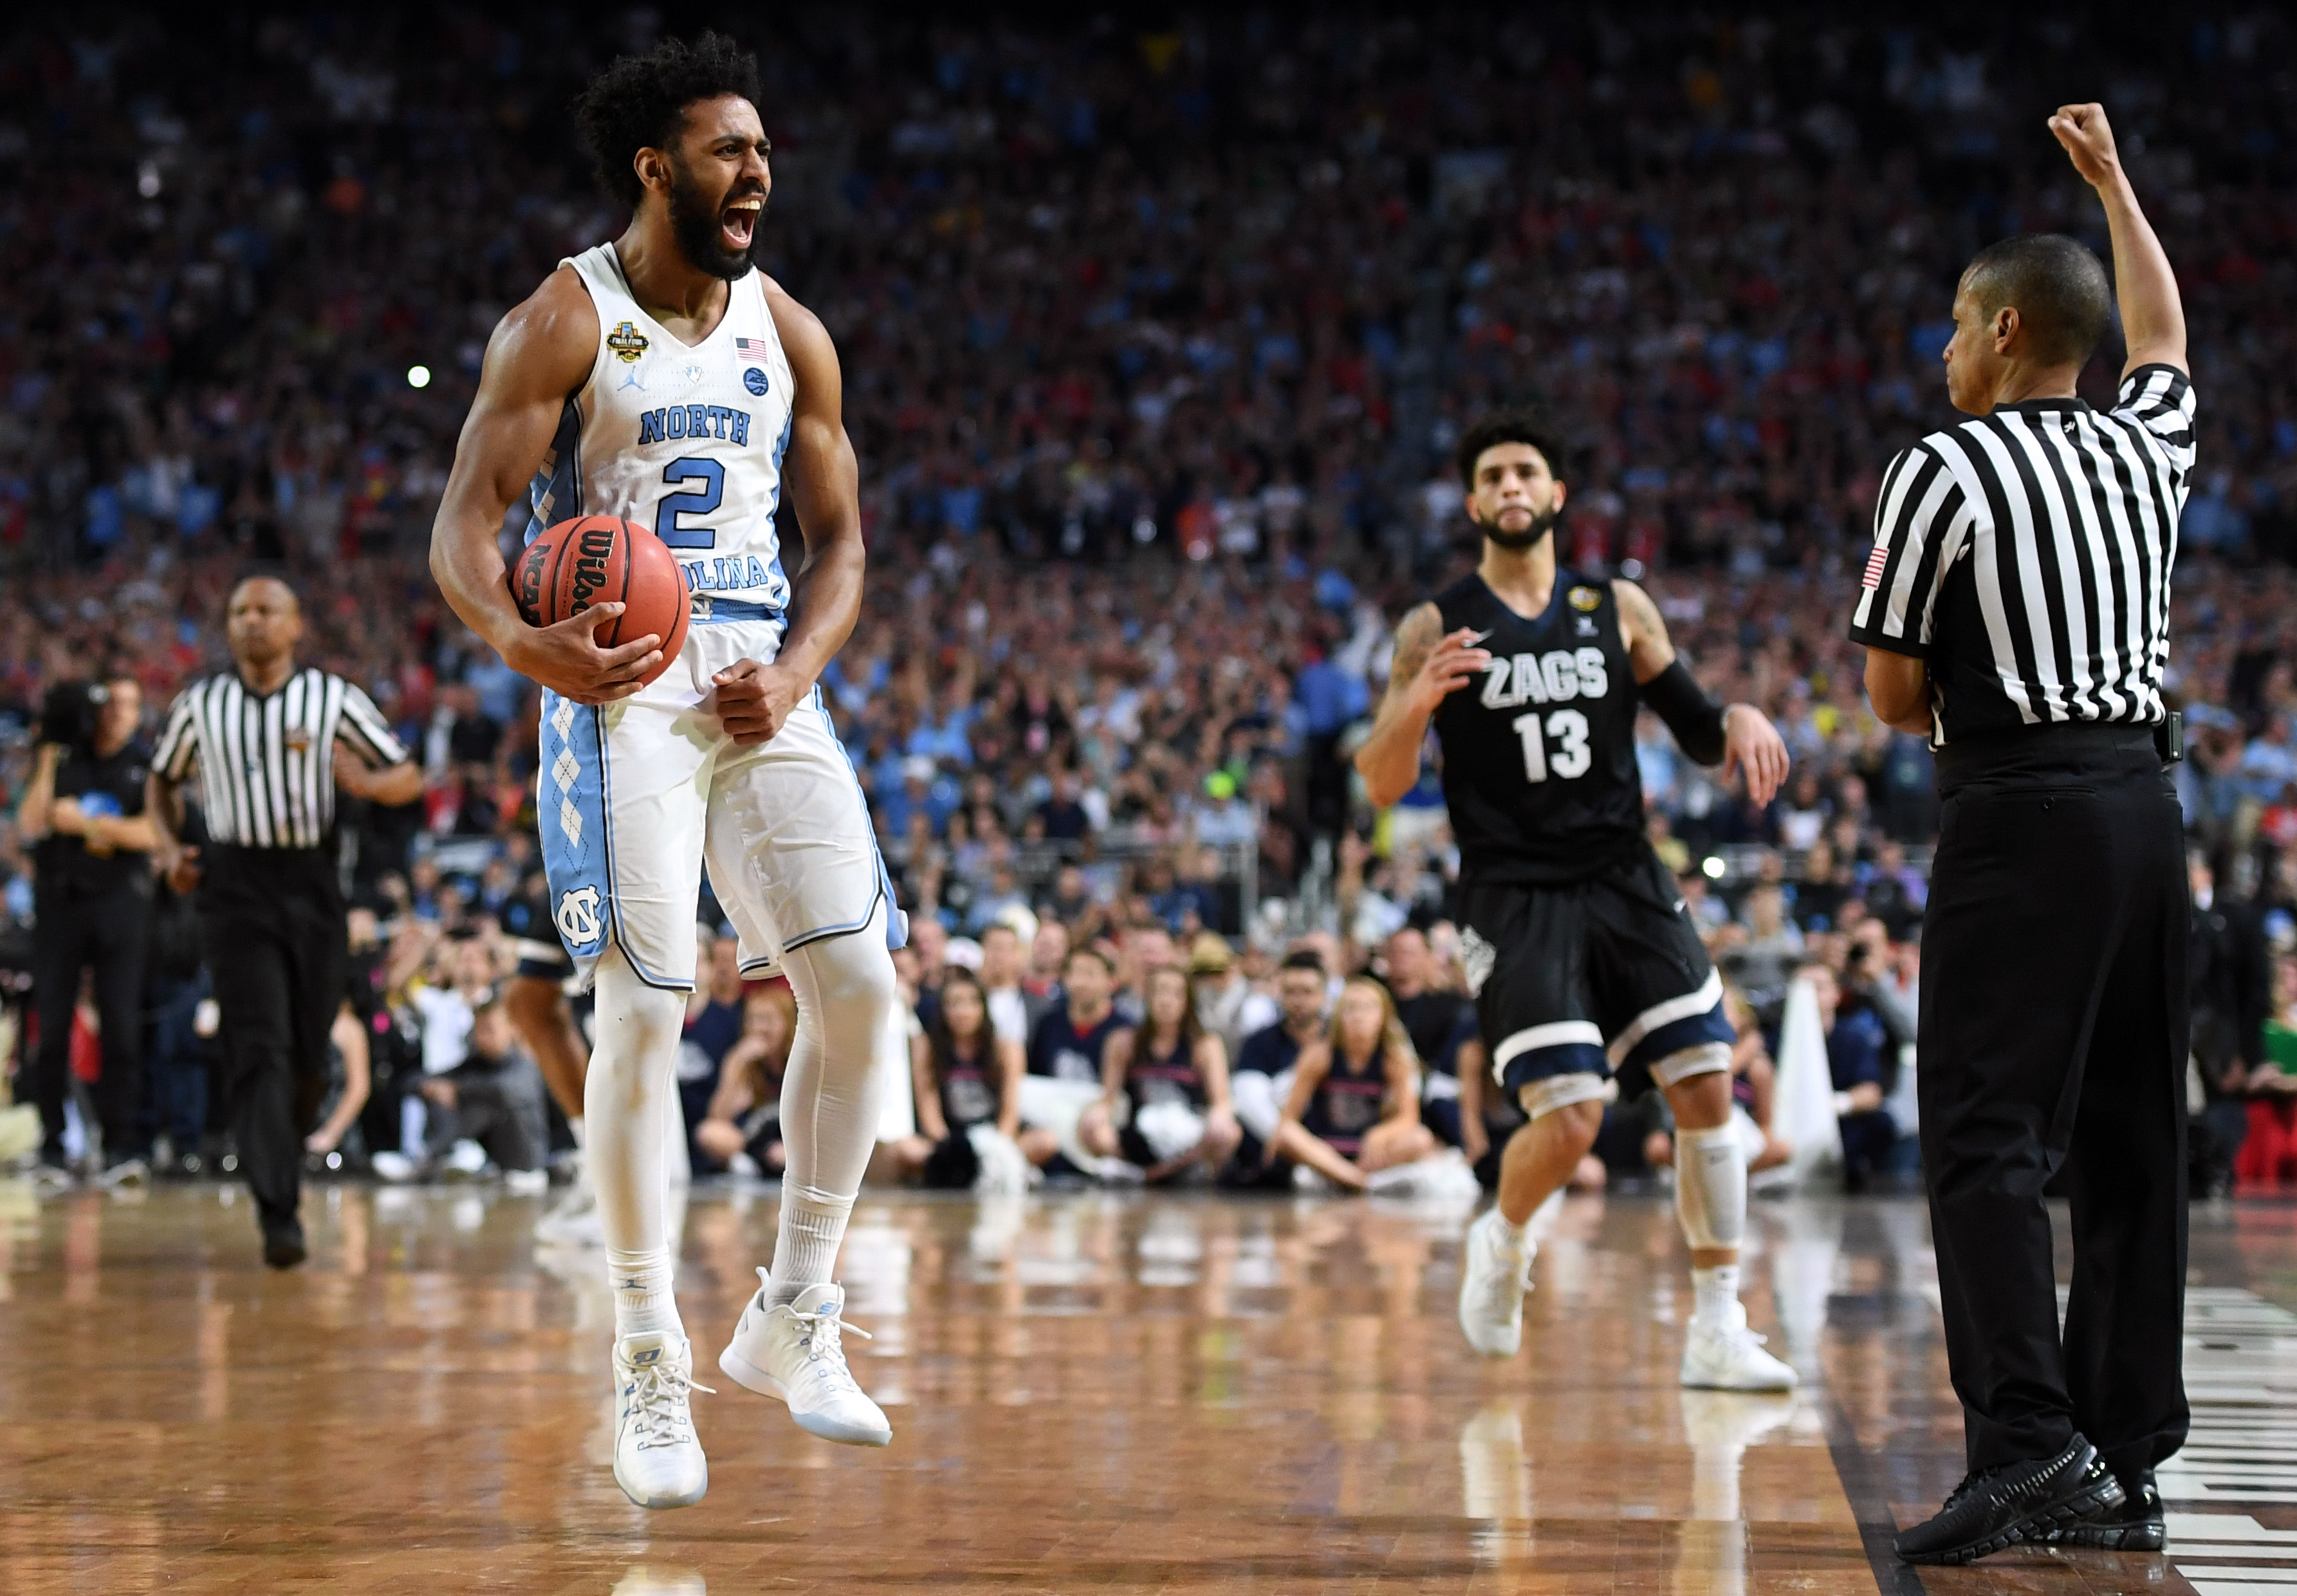 UNC Basketball: Joel Berry II 2016-2017 Season Review